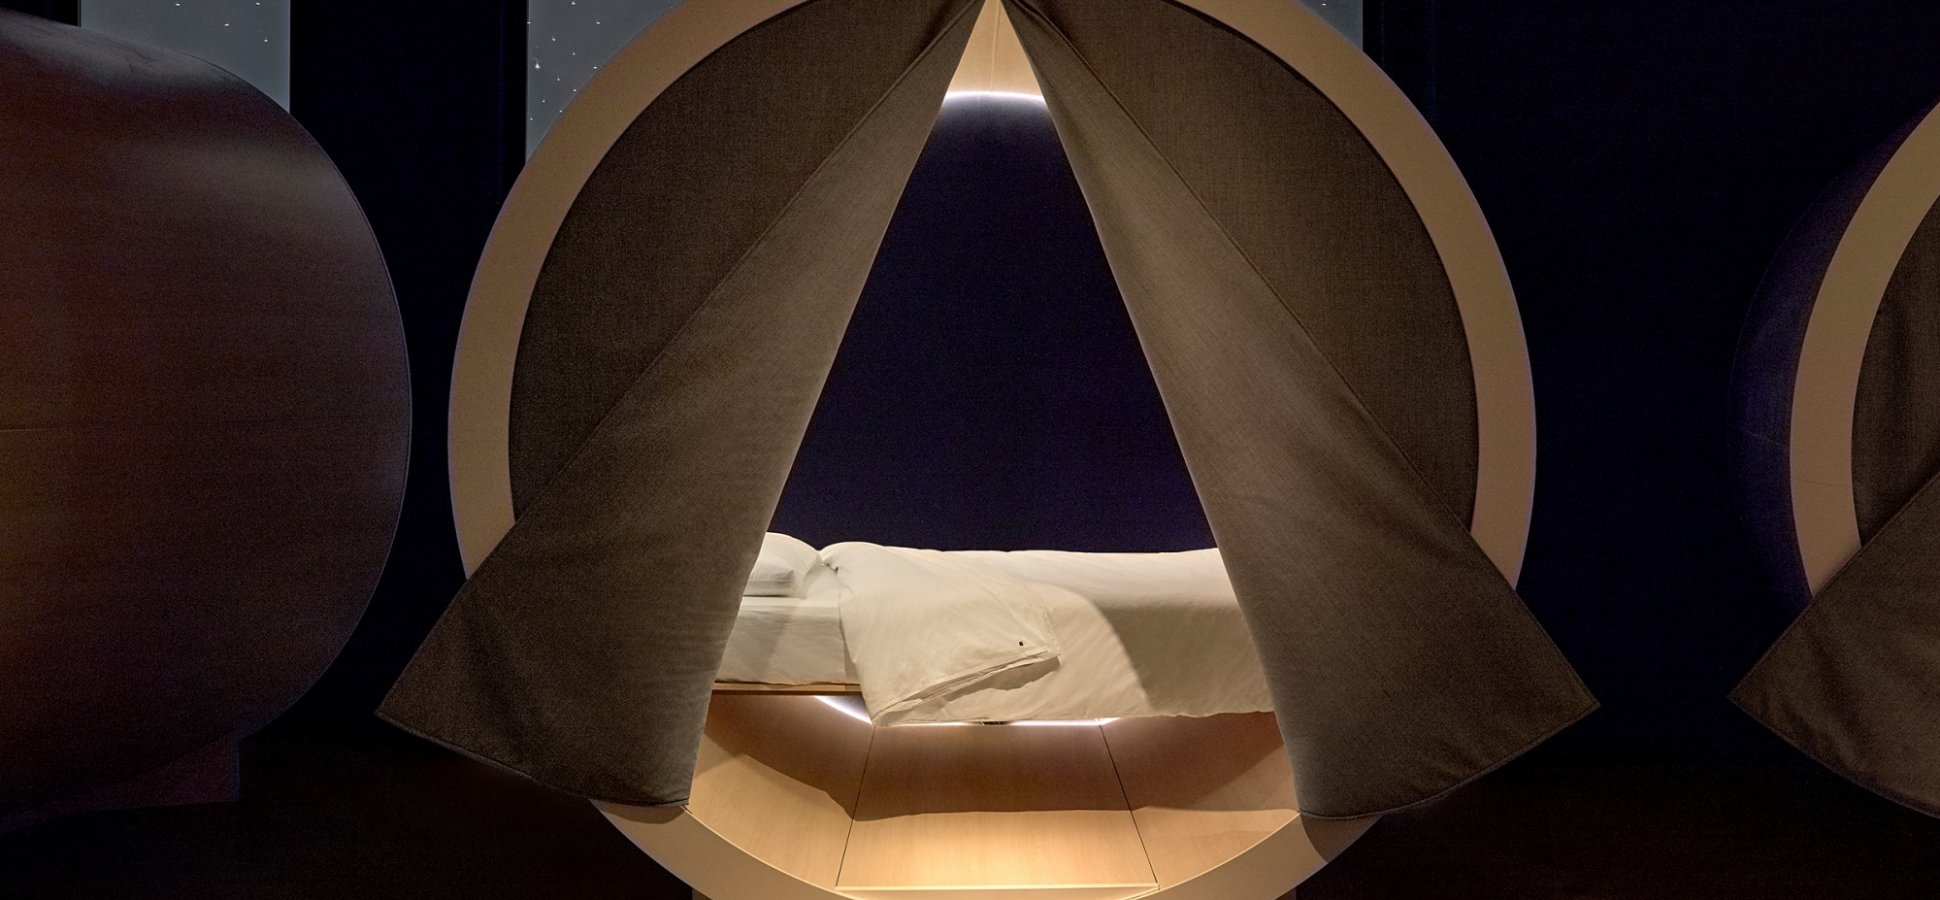 Casper Brings Sleep To A Whole New Level With The